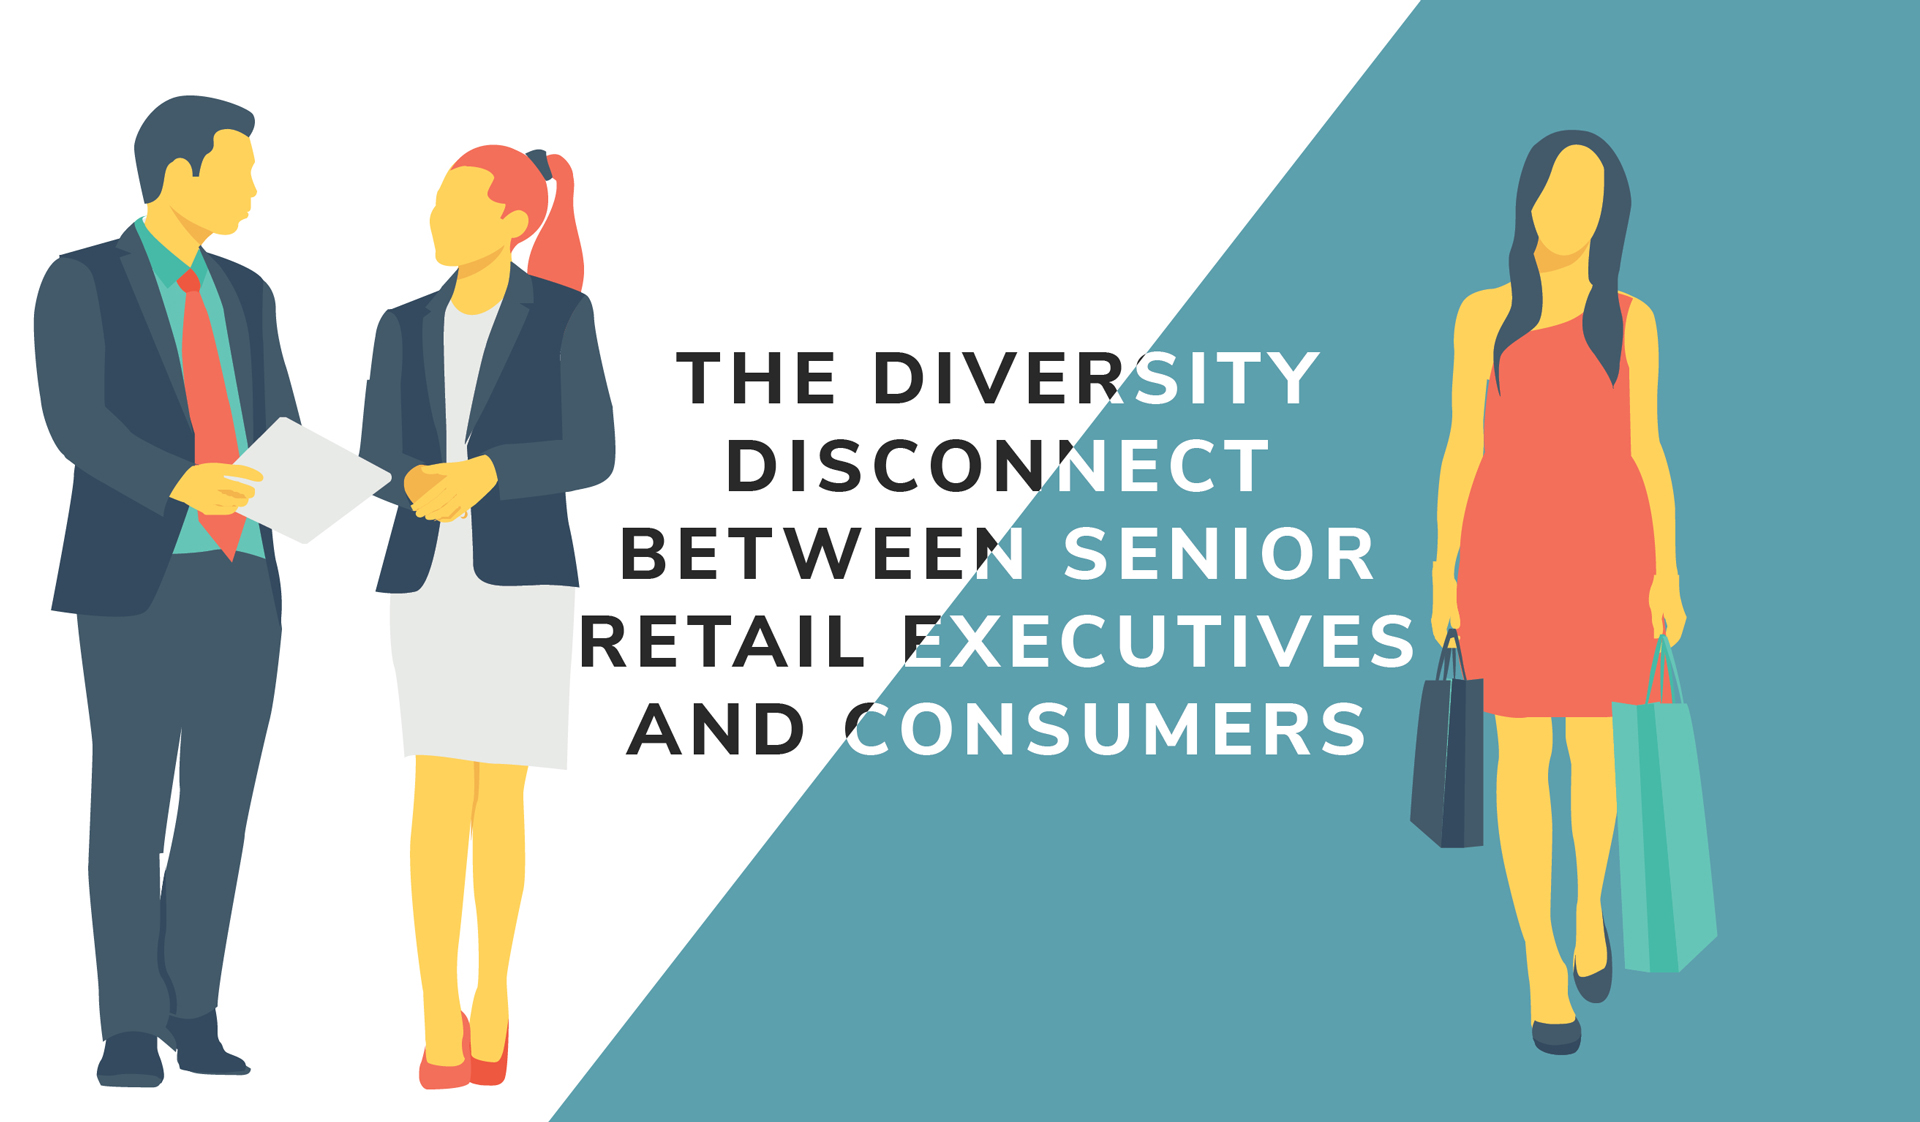 First Insight Survey Finds Significant Disconnect Between Senior Retail Executives and Consumers on Diversity and Inclusion